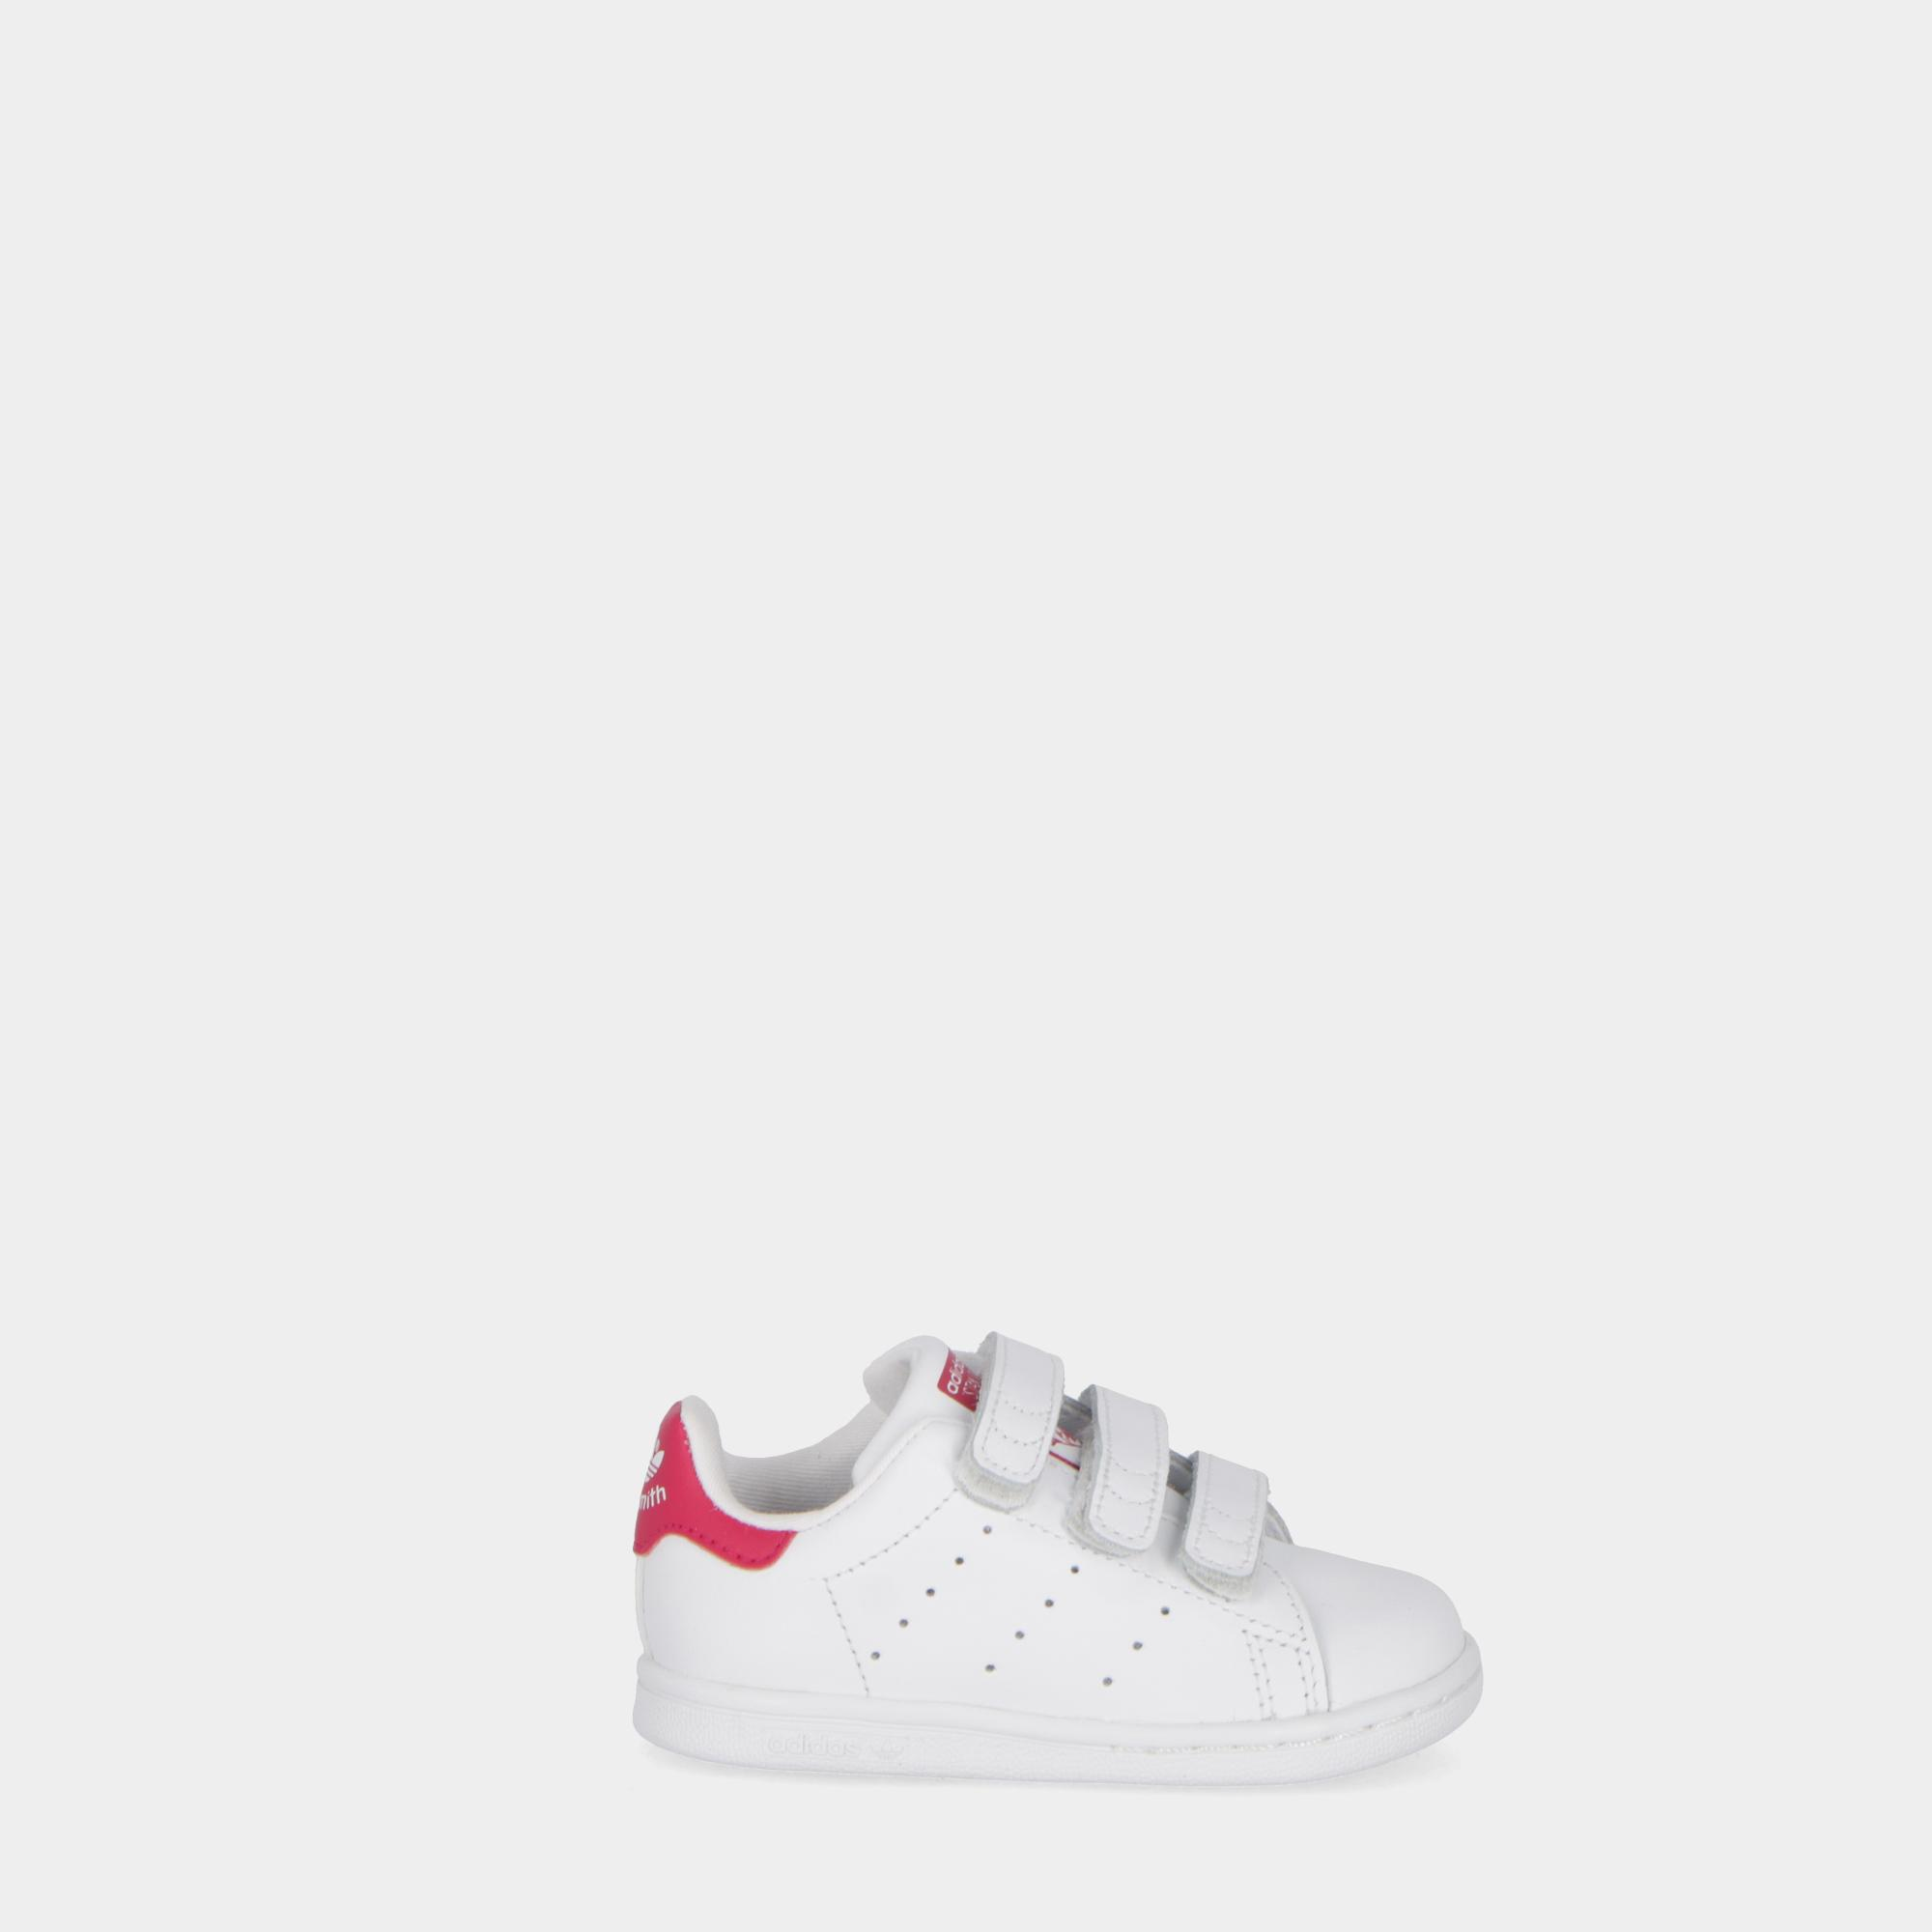 cheaper f1824 5b081 ADIDAS STAN SMITH - Kids